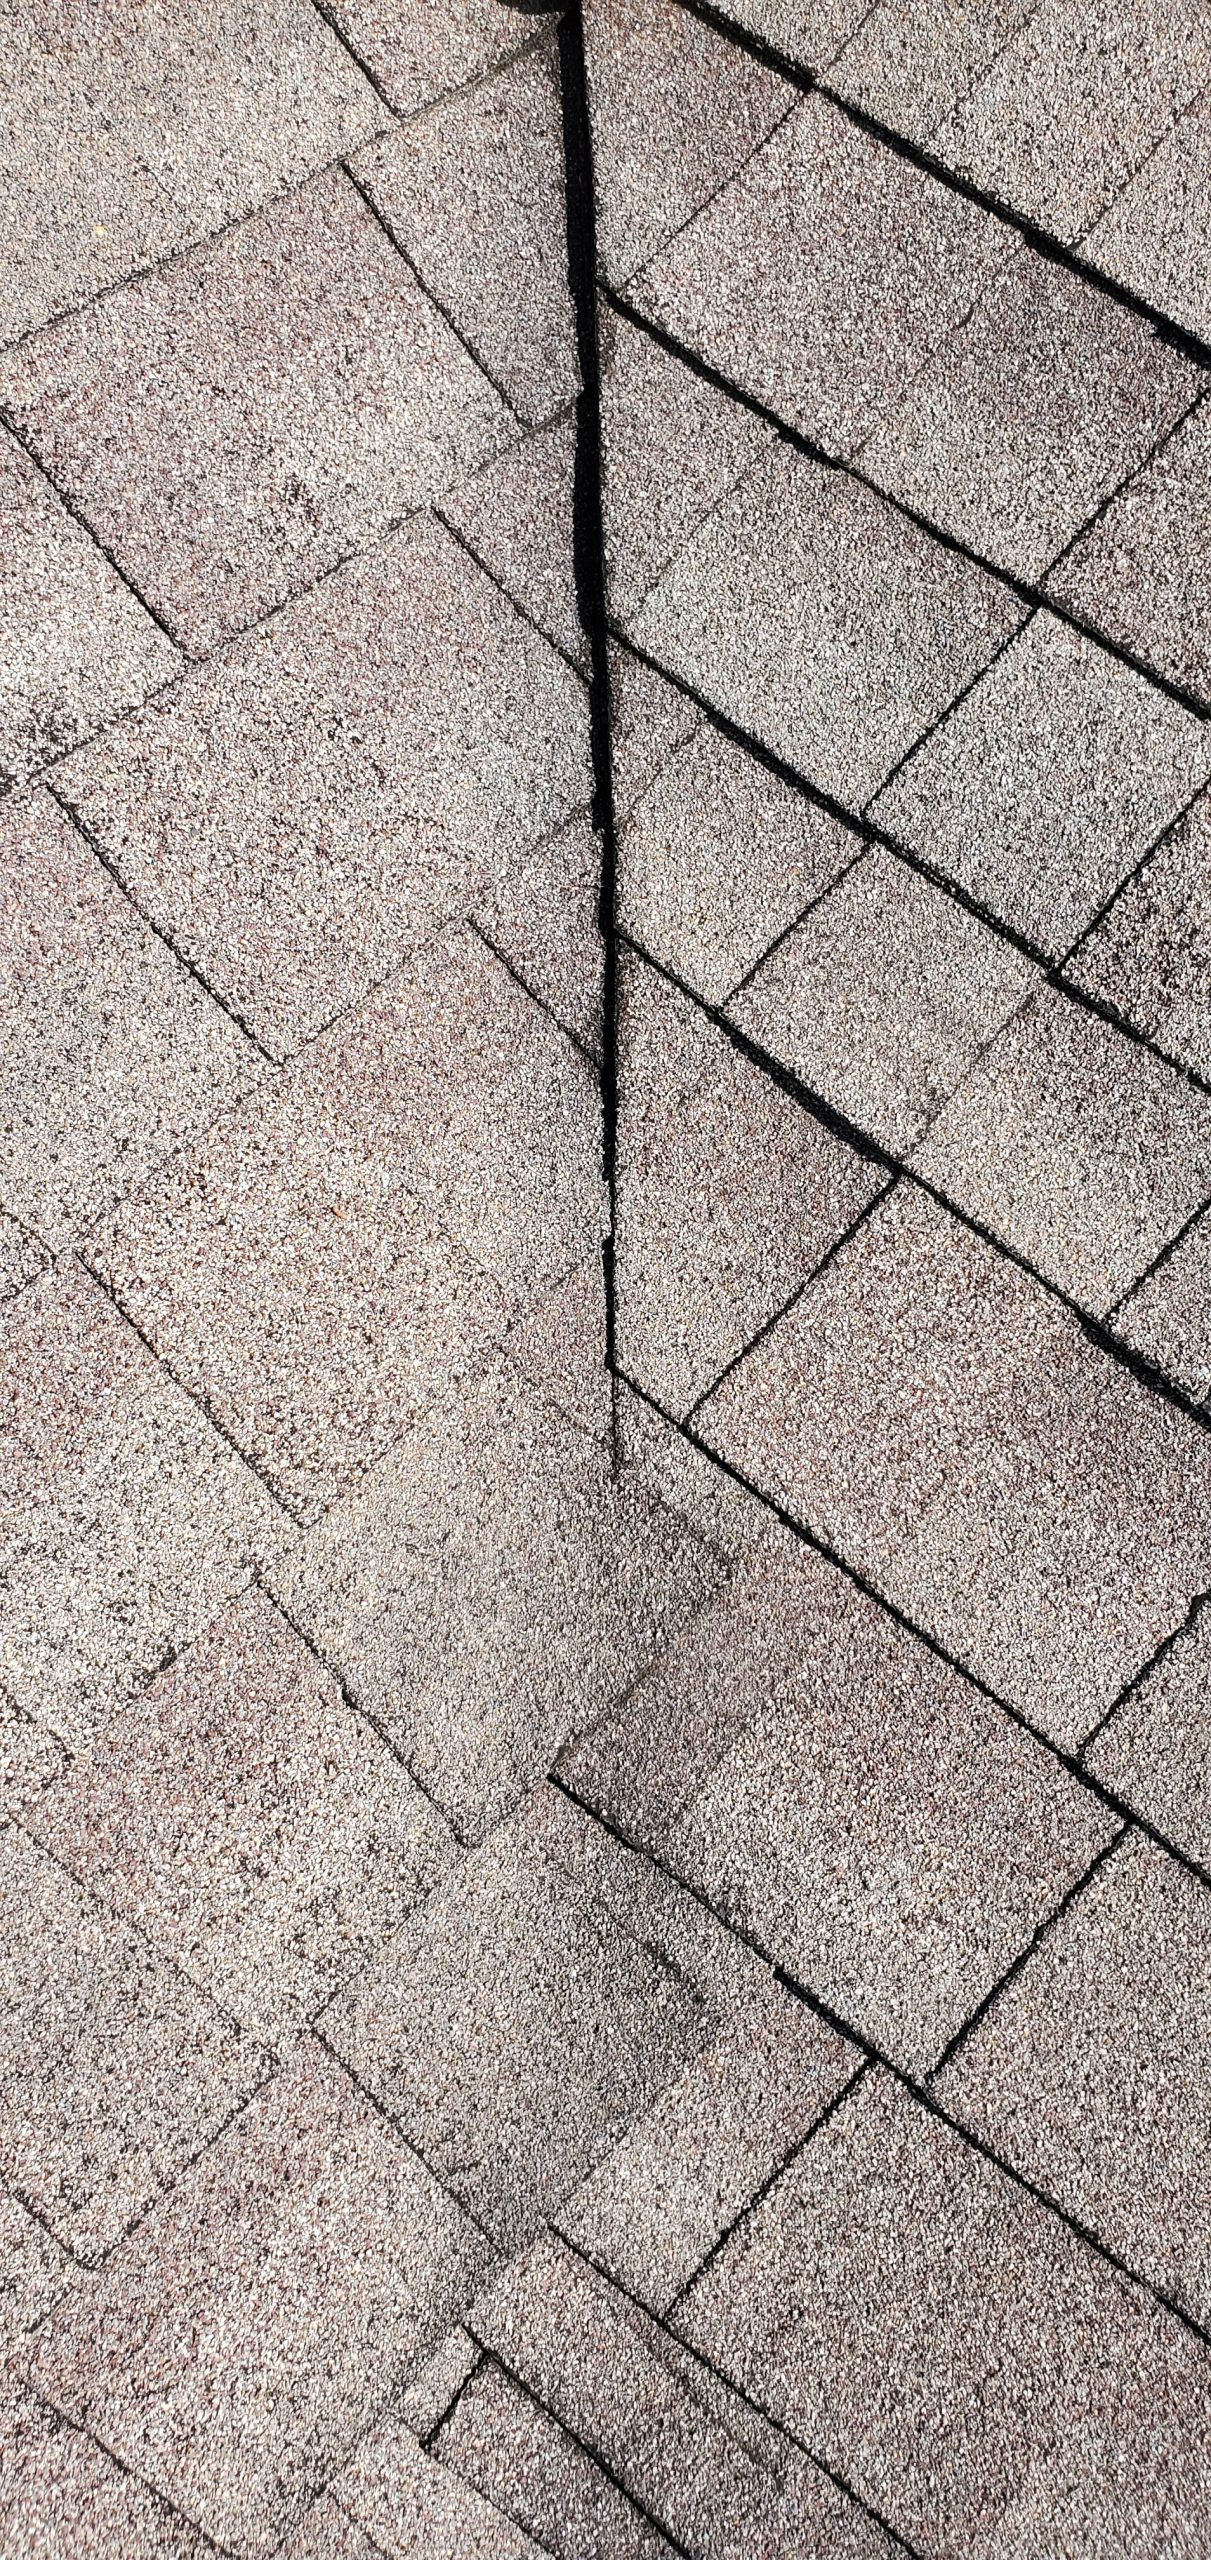 this is a picture of the valley of an old dimensional shingle in sevierville tn